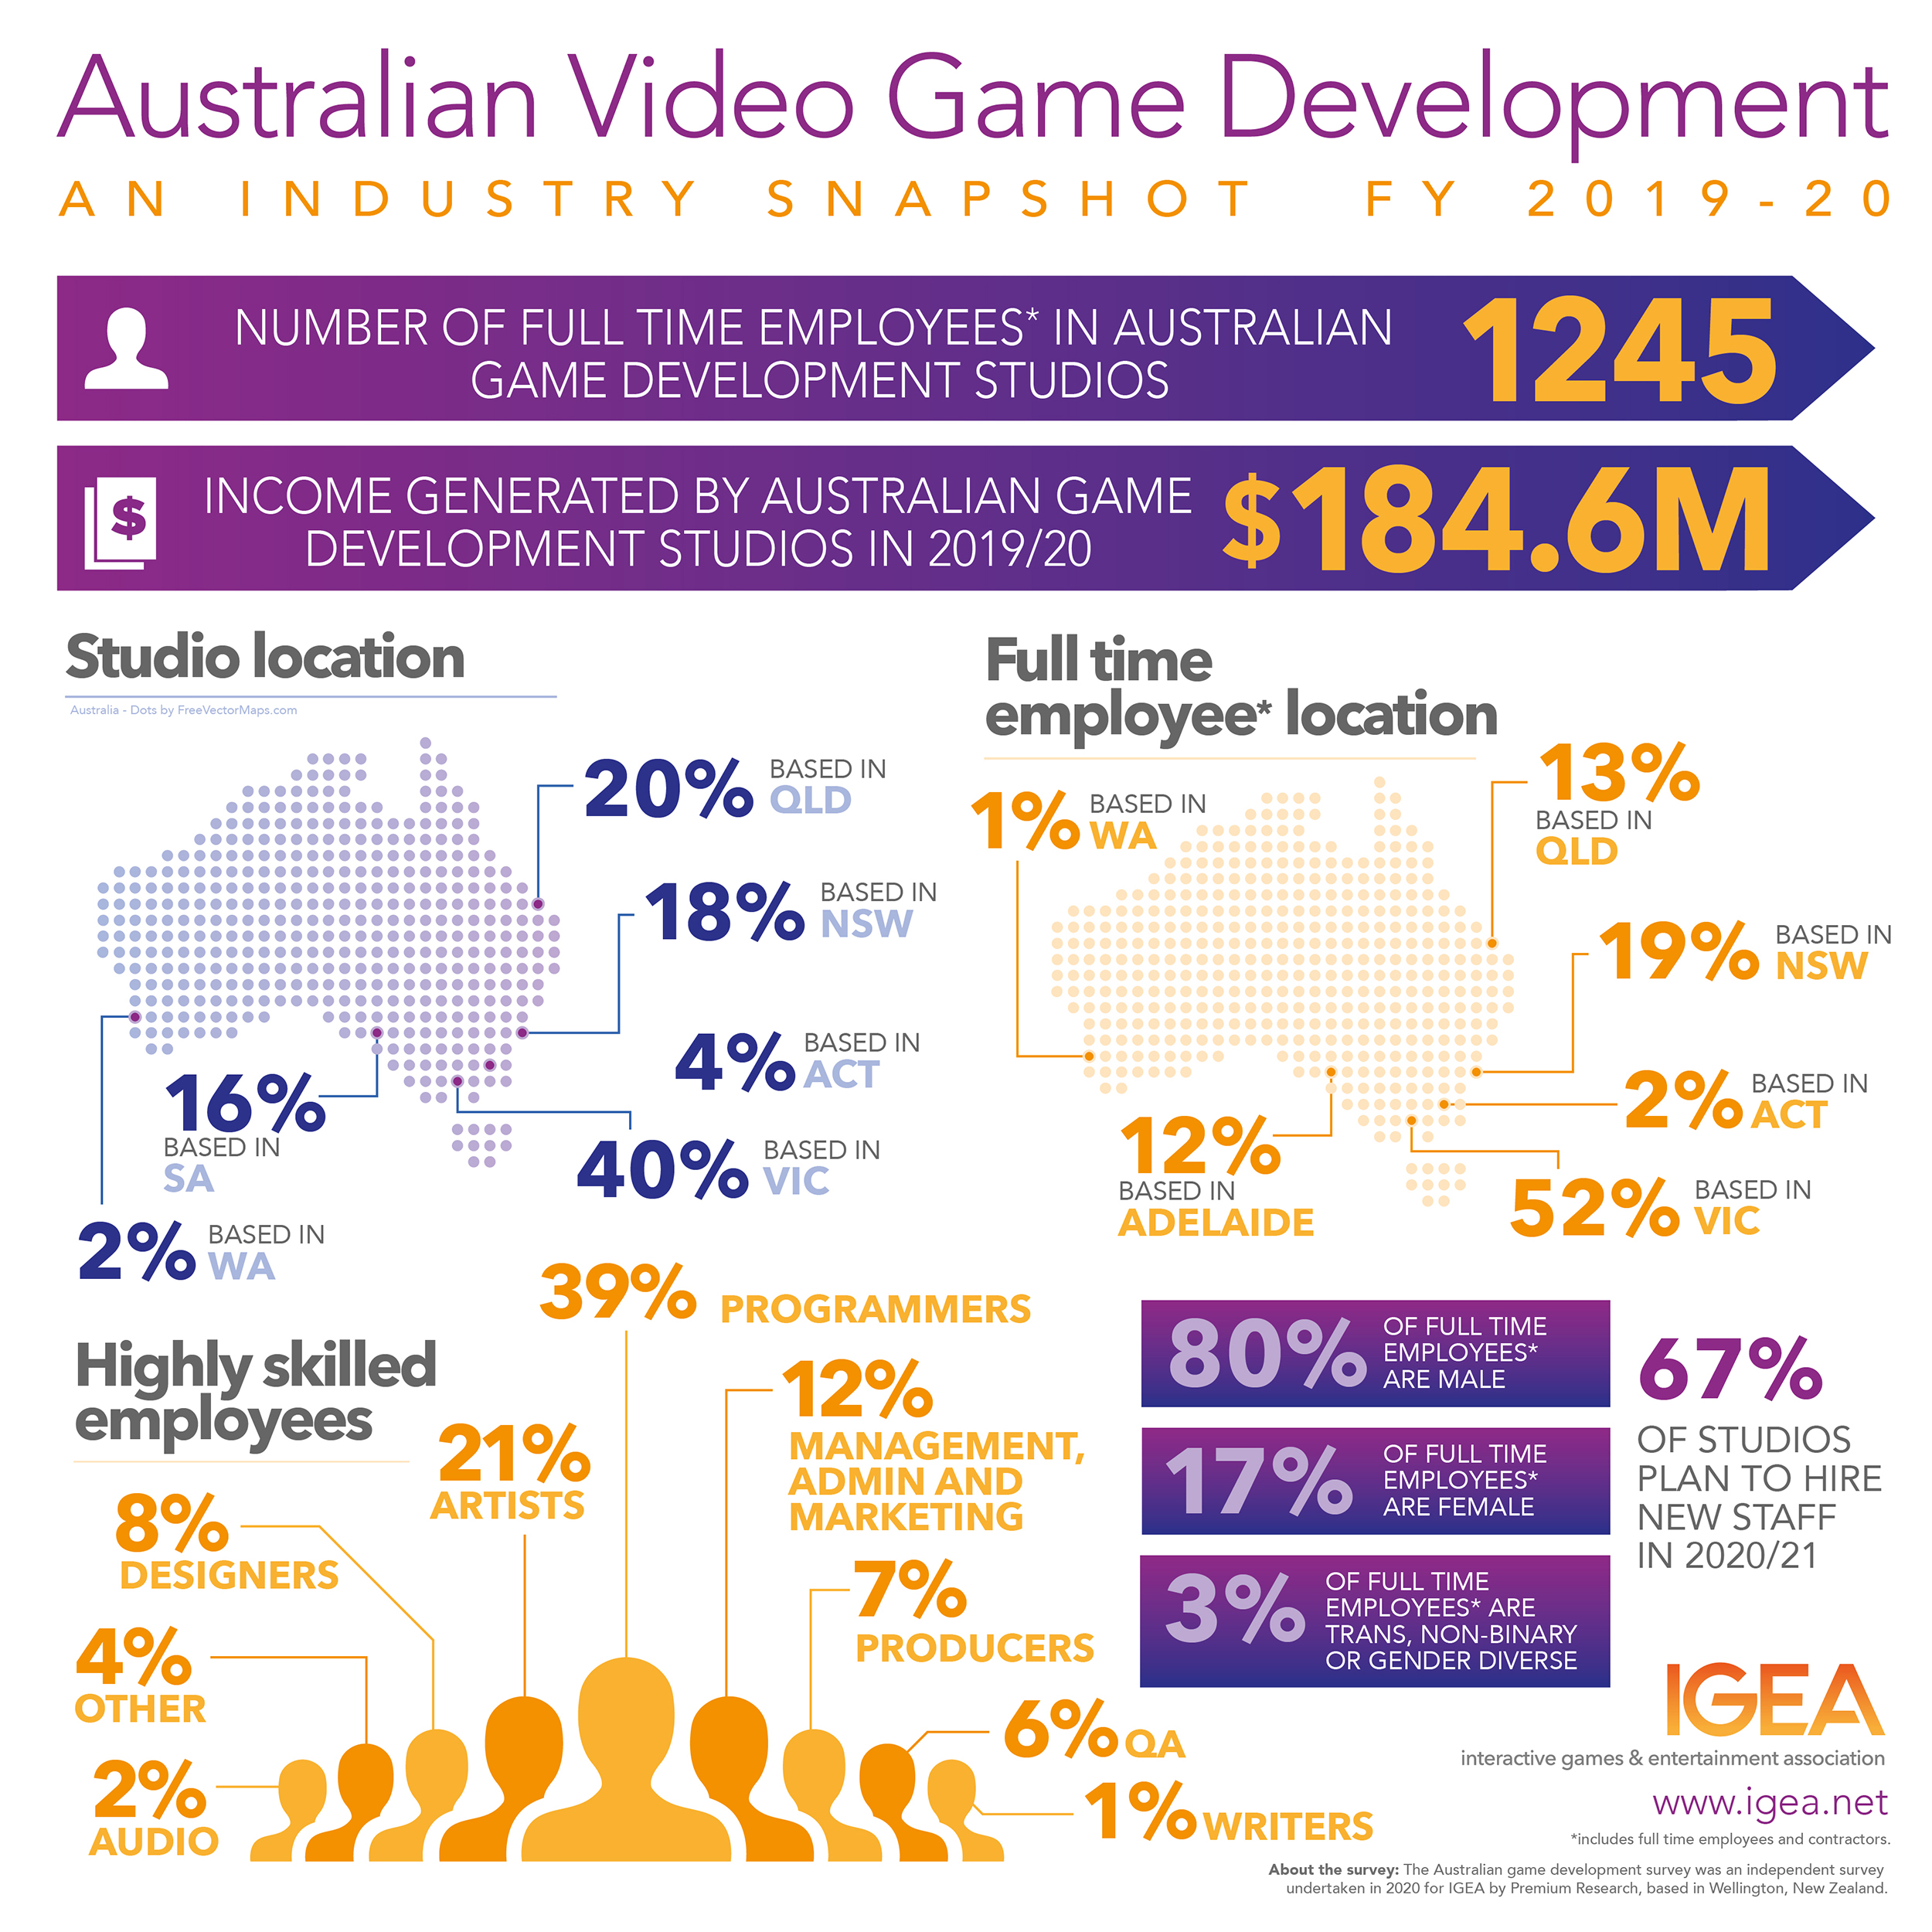 Infographic of the Australian Video Game Development Industry statistics 2019-2020